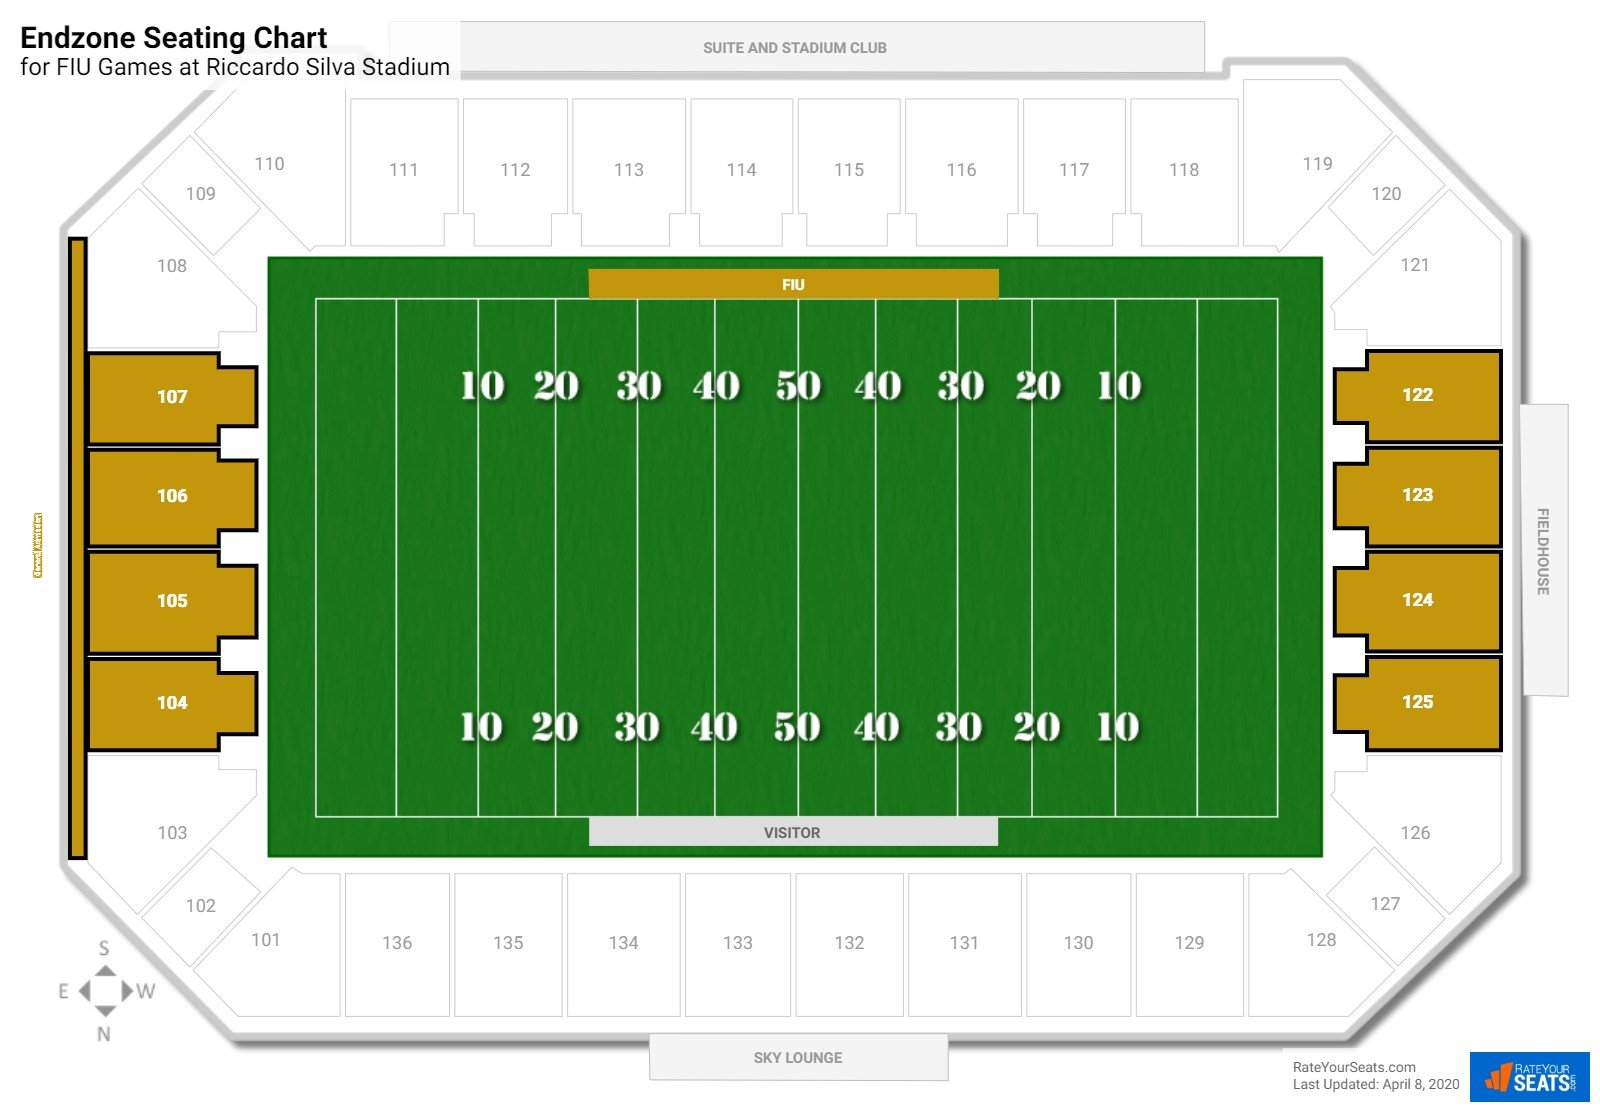 FIU Stadium Endzone seating chart